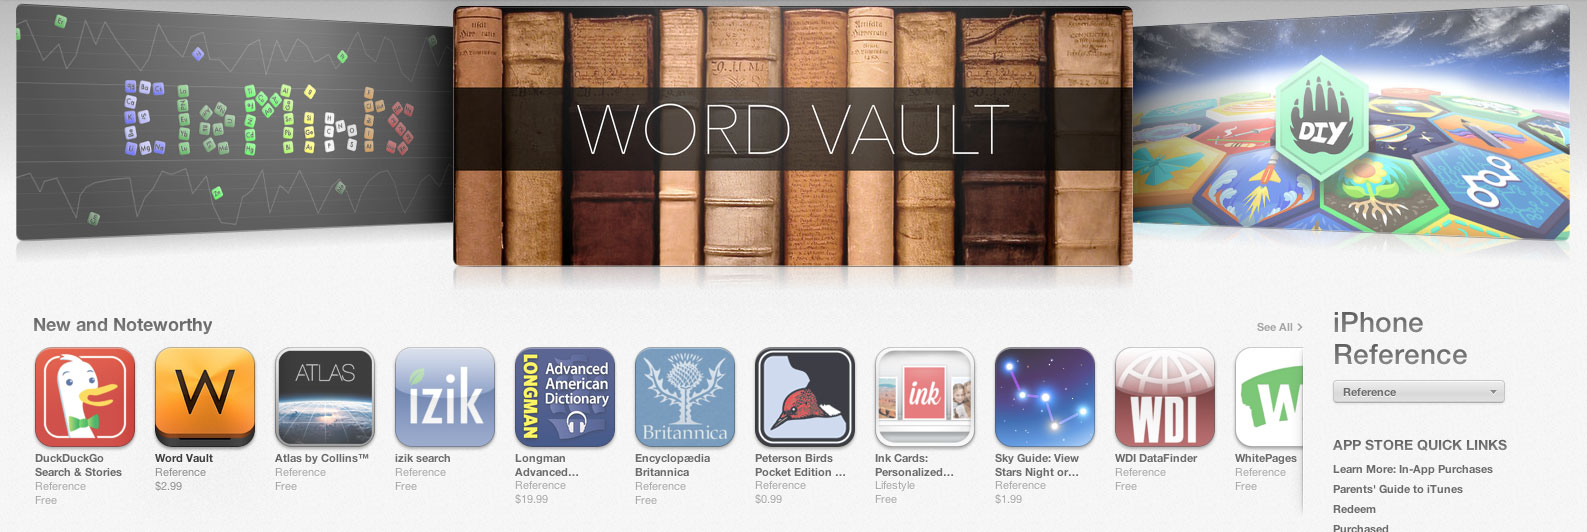 word-vault-app-store-feature.jpg